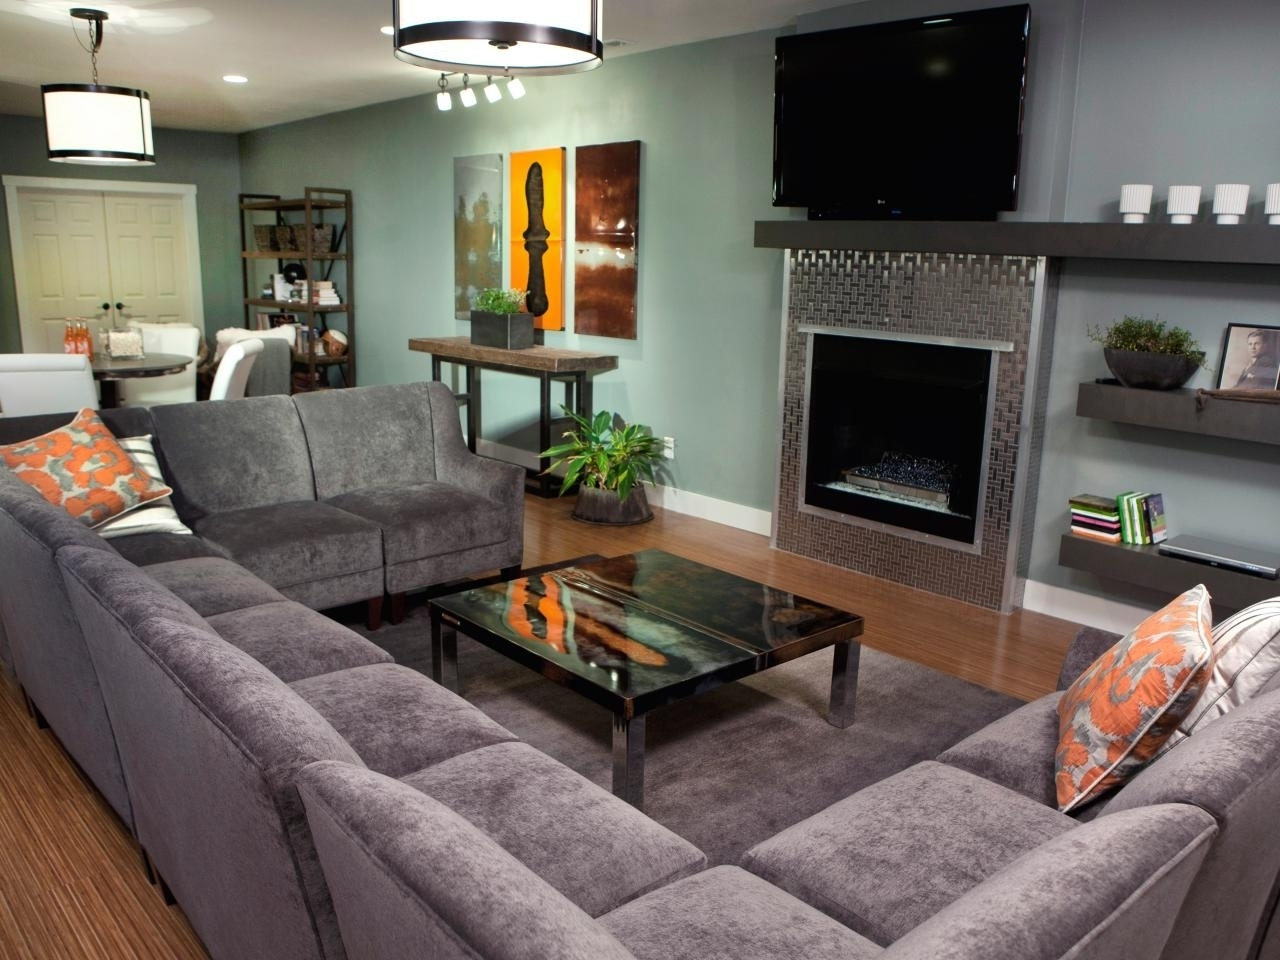 sectional sofa u shaped sofas and sectionals for sale showing gallery of view 13 20 photos regarding current has one the